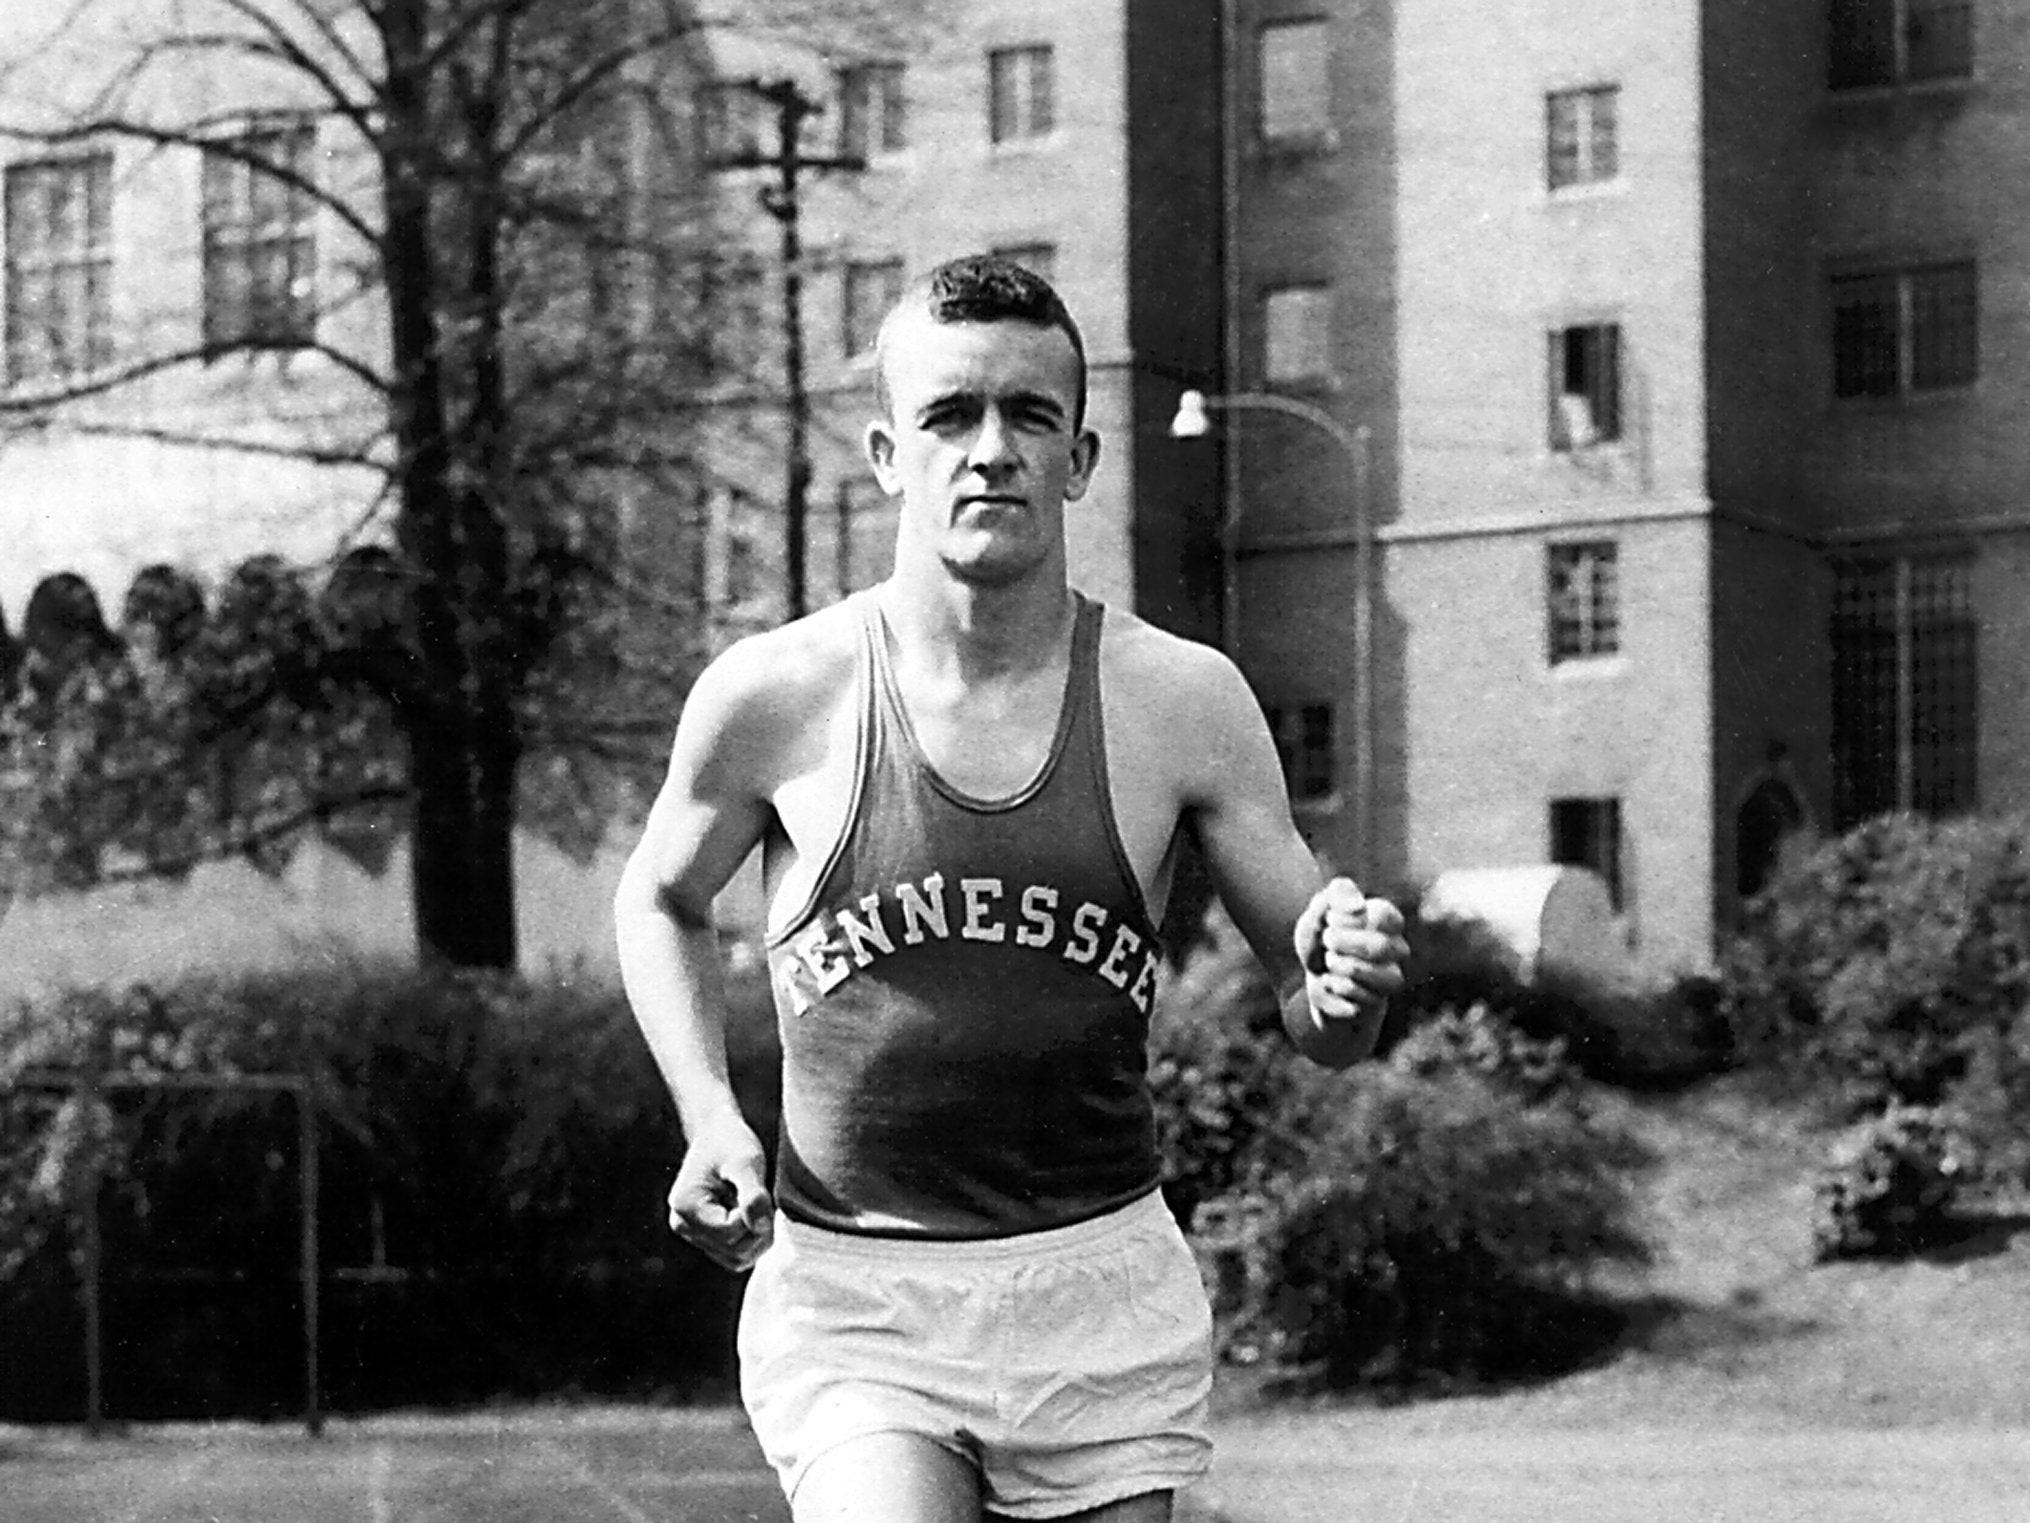 Ed Murphey won his third consecutive Southeastern Conference championship in the mile run, setting a new SEC record of 4:14 in May 1957 at Legion Field in Birmingham, AL.  His mile record (4:16) run at Neyland Stadium in 1956 stands unbroken for that venue.  He set the 1956 SEC Cross Country record in Atlanta (21:21).  Murphey also was the U.S. Marine Corps mile champion in 1958 and was inducted into the Brownsville, TN Sports Hall of Fame in 1994.  He was inducted into the Tennessee Sports Hall of Fame in 2005.  The Ed Murphey Award has been presented to the outstanding trackman each year at UT since 1965.